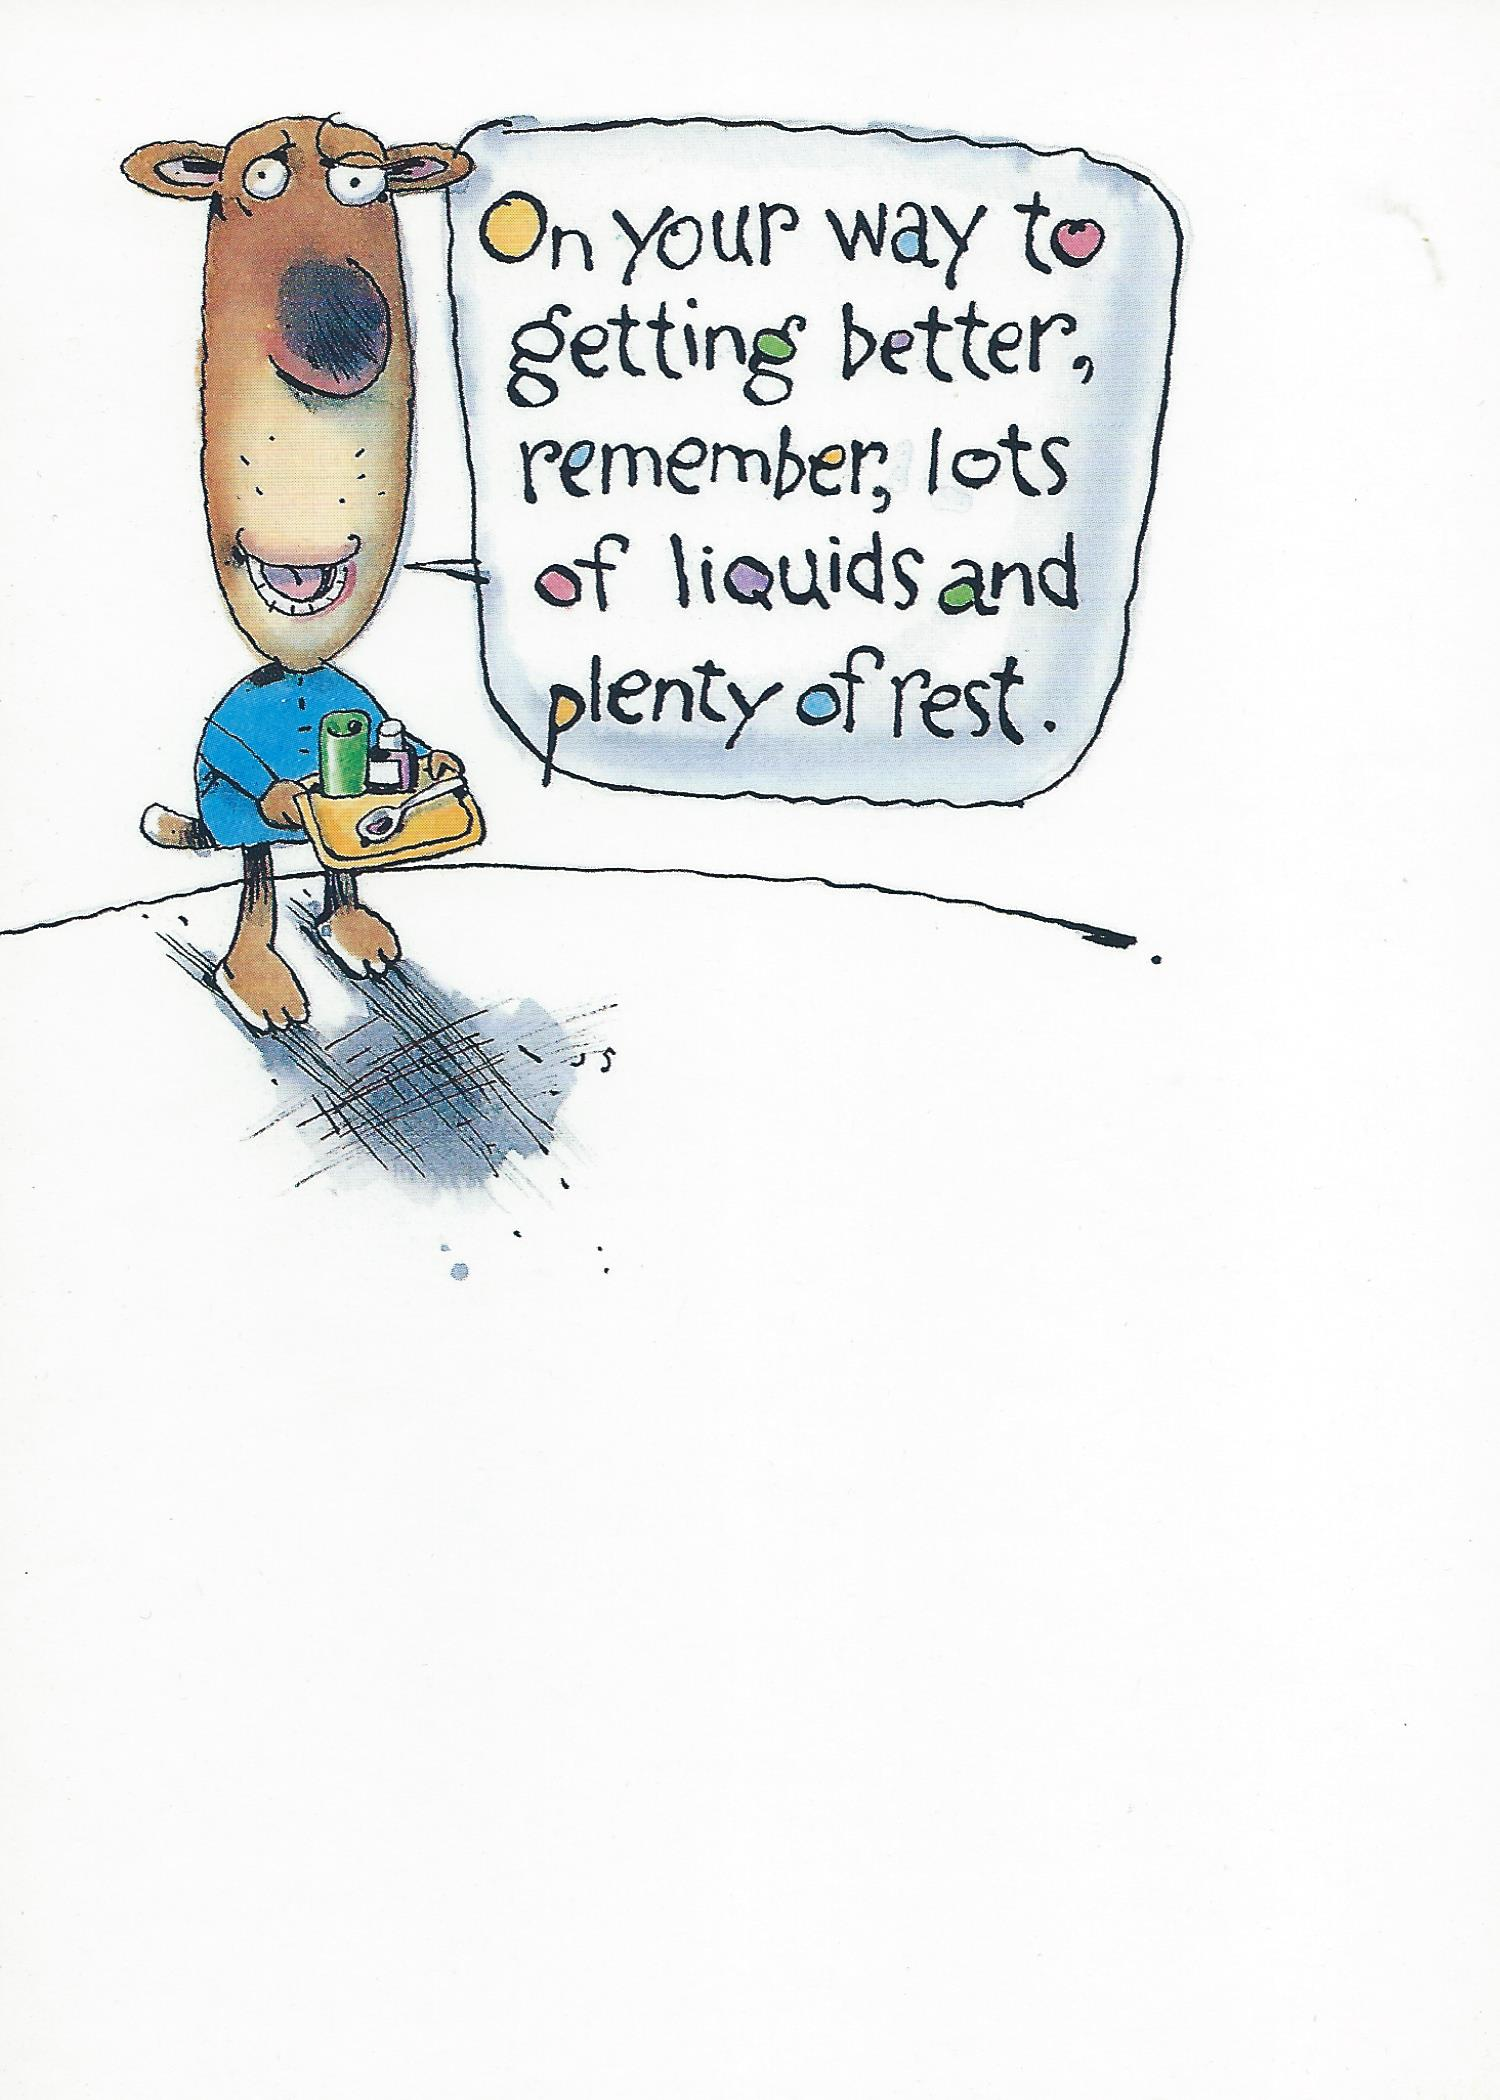 On your way to getting better, remember, lots of liquids and plenty of rest.